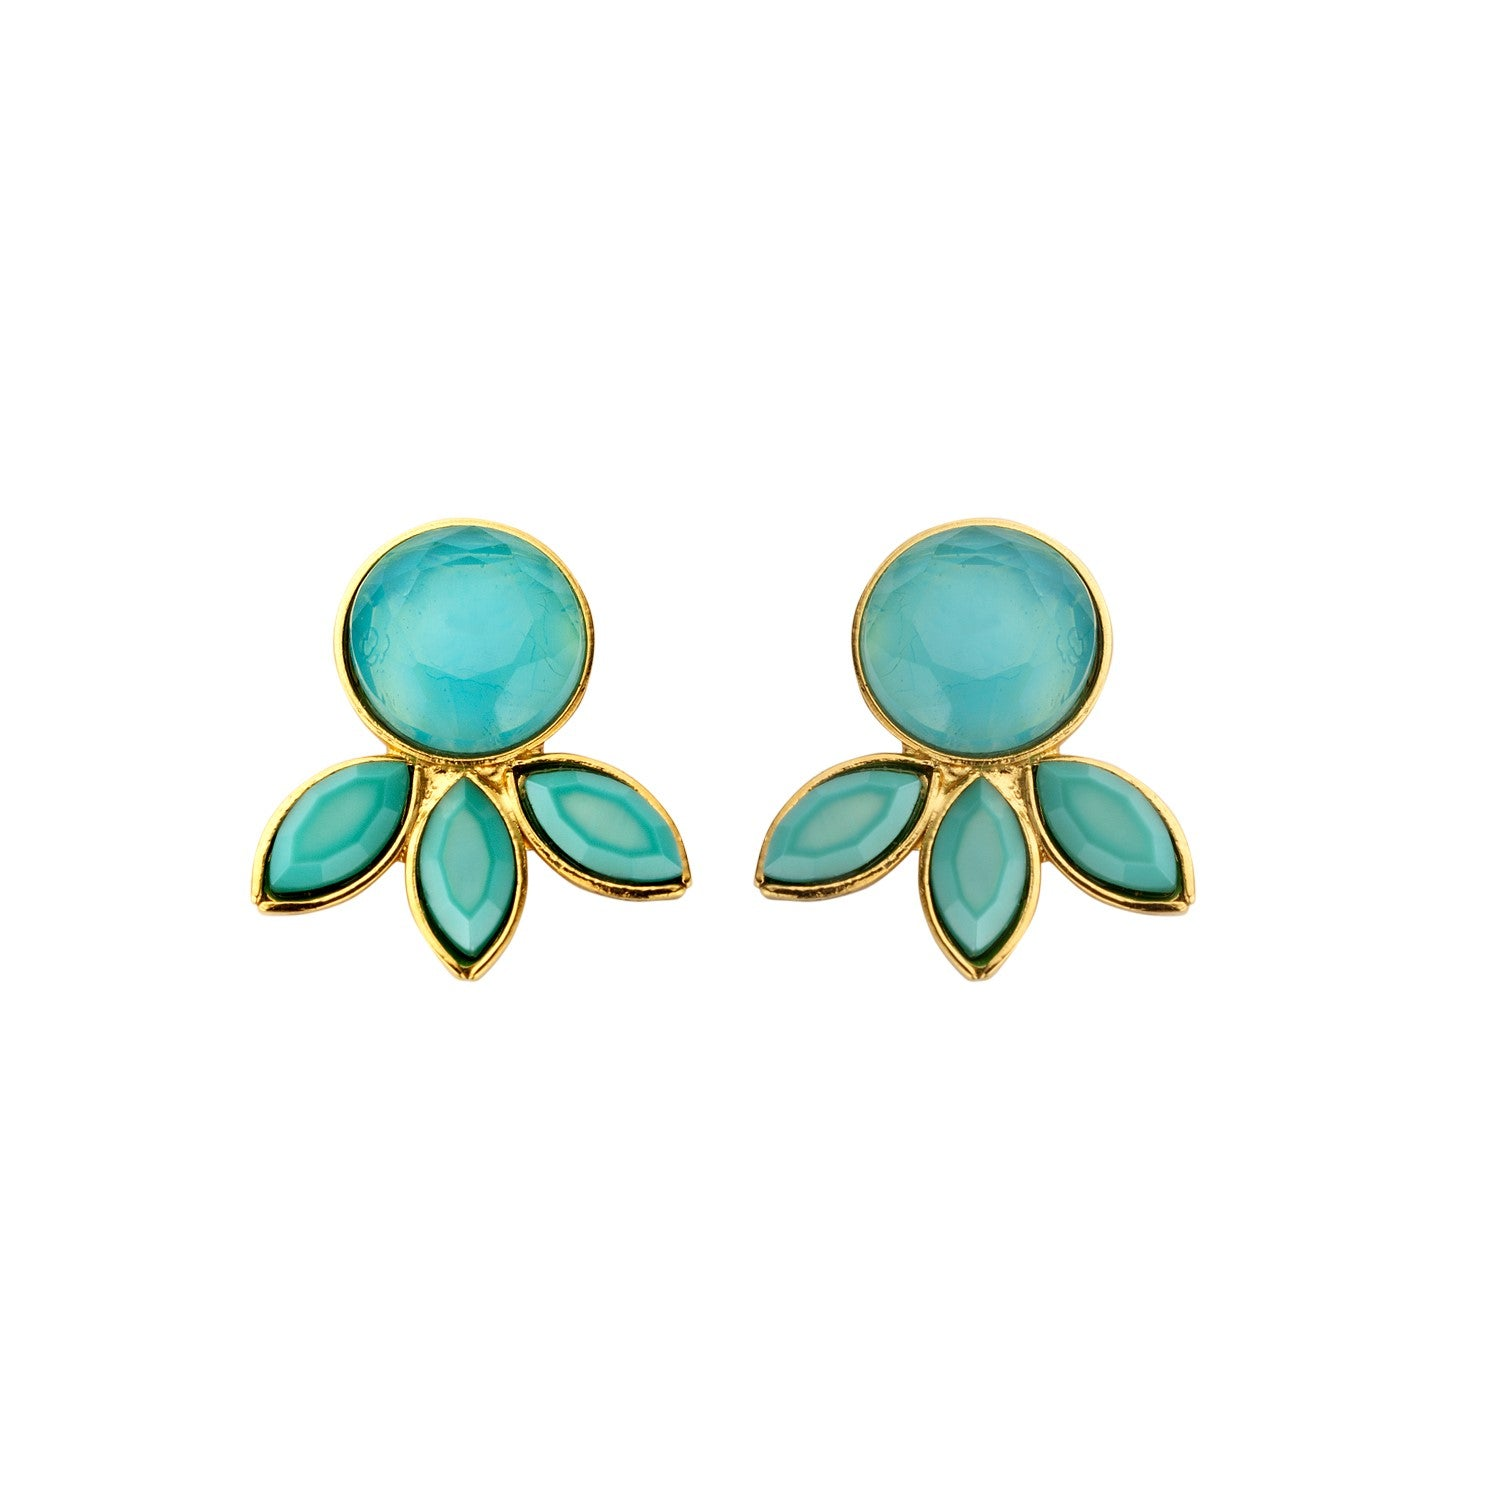 Palm Navet milk blue earrings - Souvenirs de Pomme